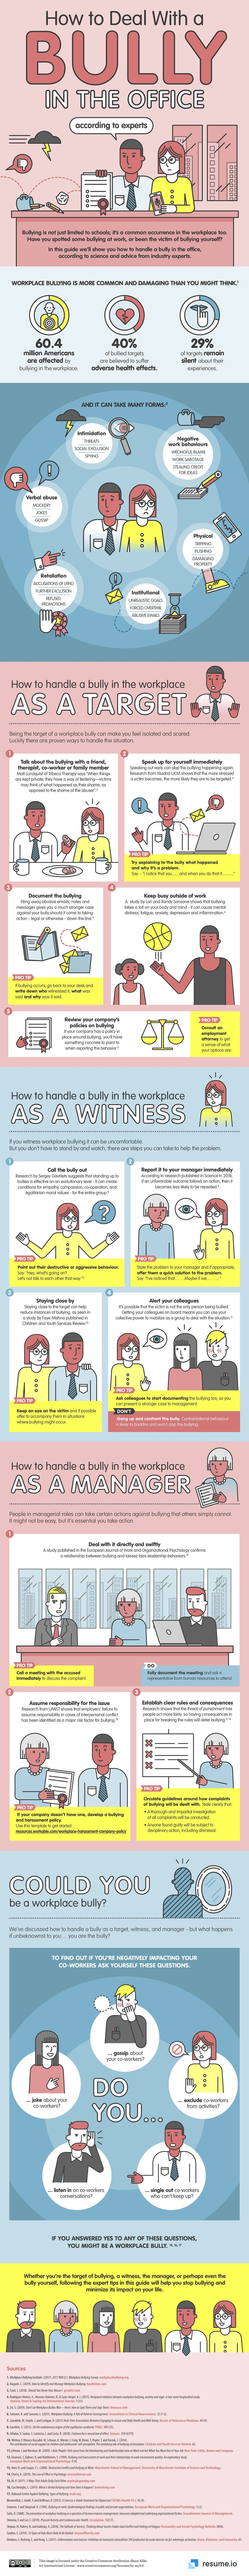 An infographic showing how to deal with bullying at work.